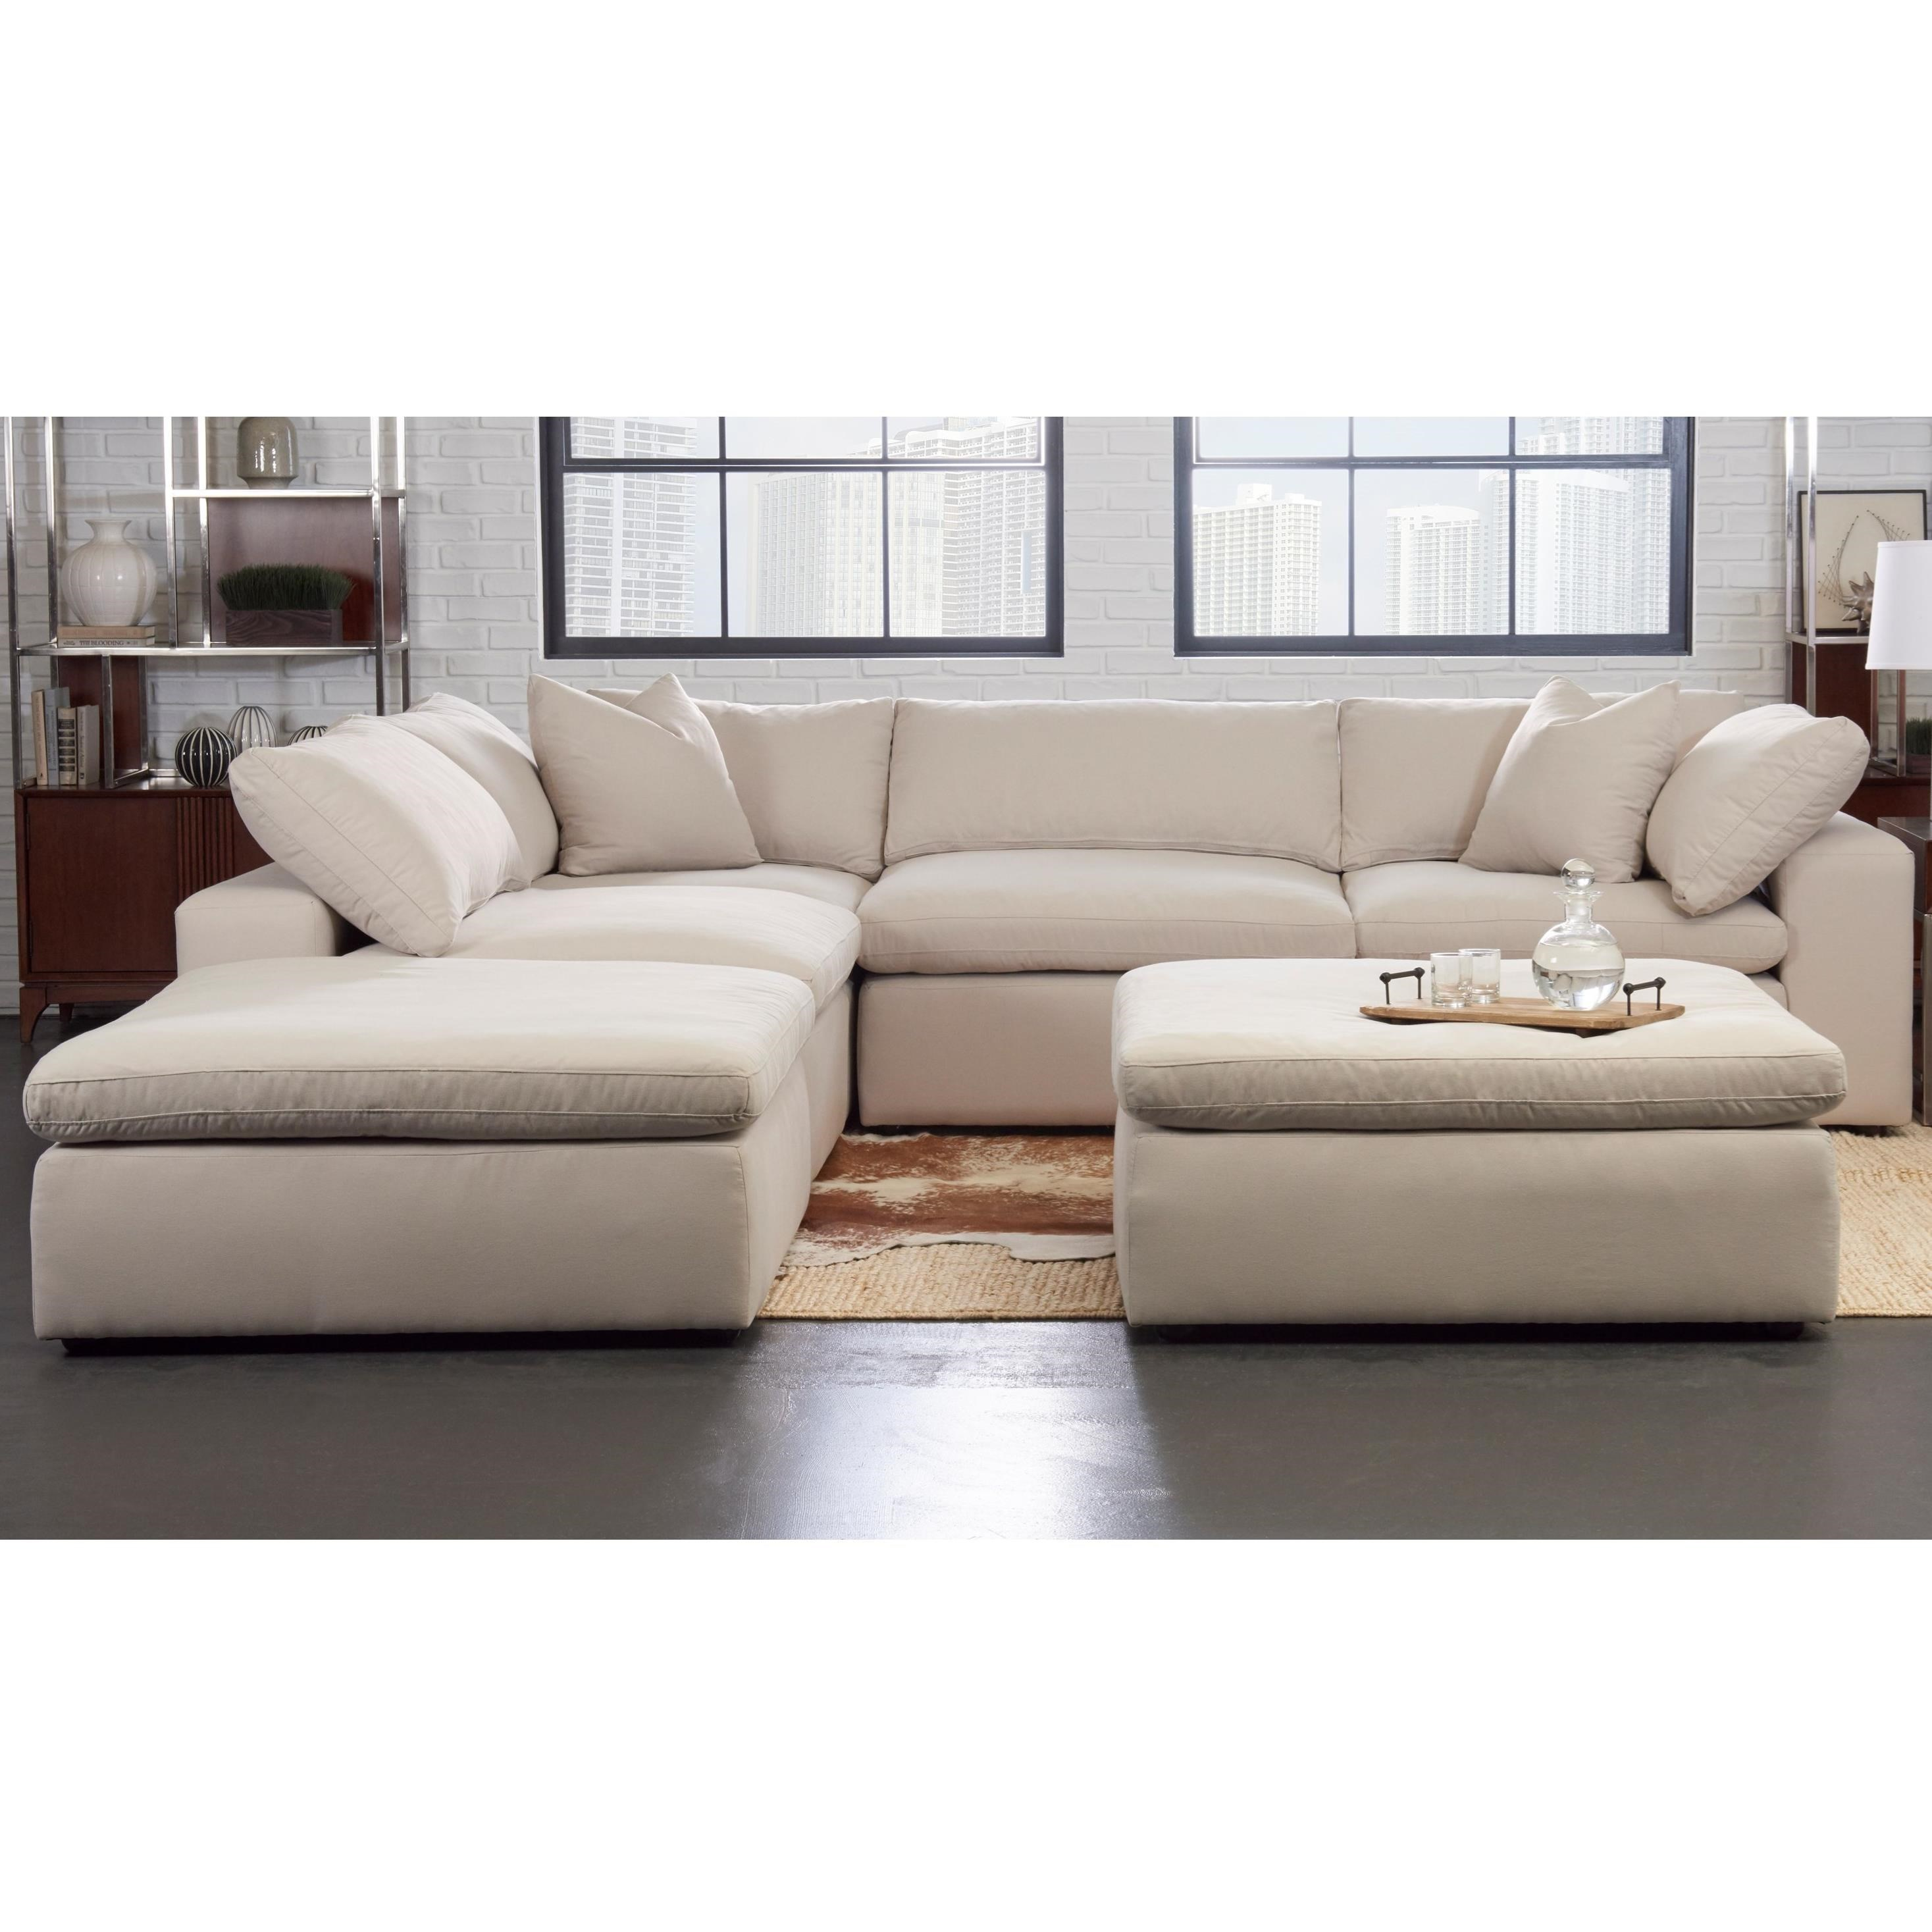 Klaussner Monterey Contemporary 5 Pc Modular Sectional Sofa